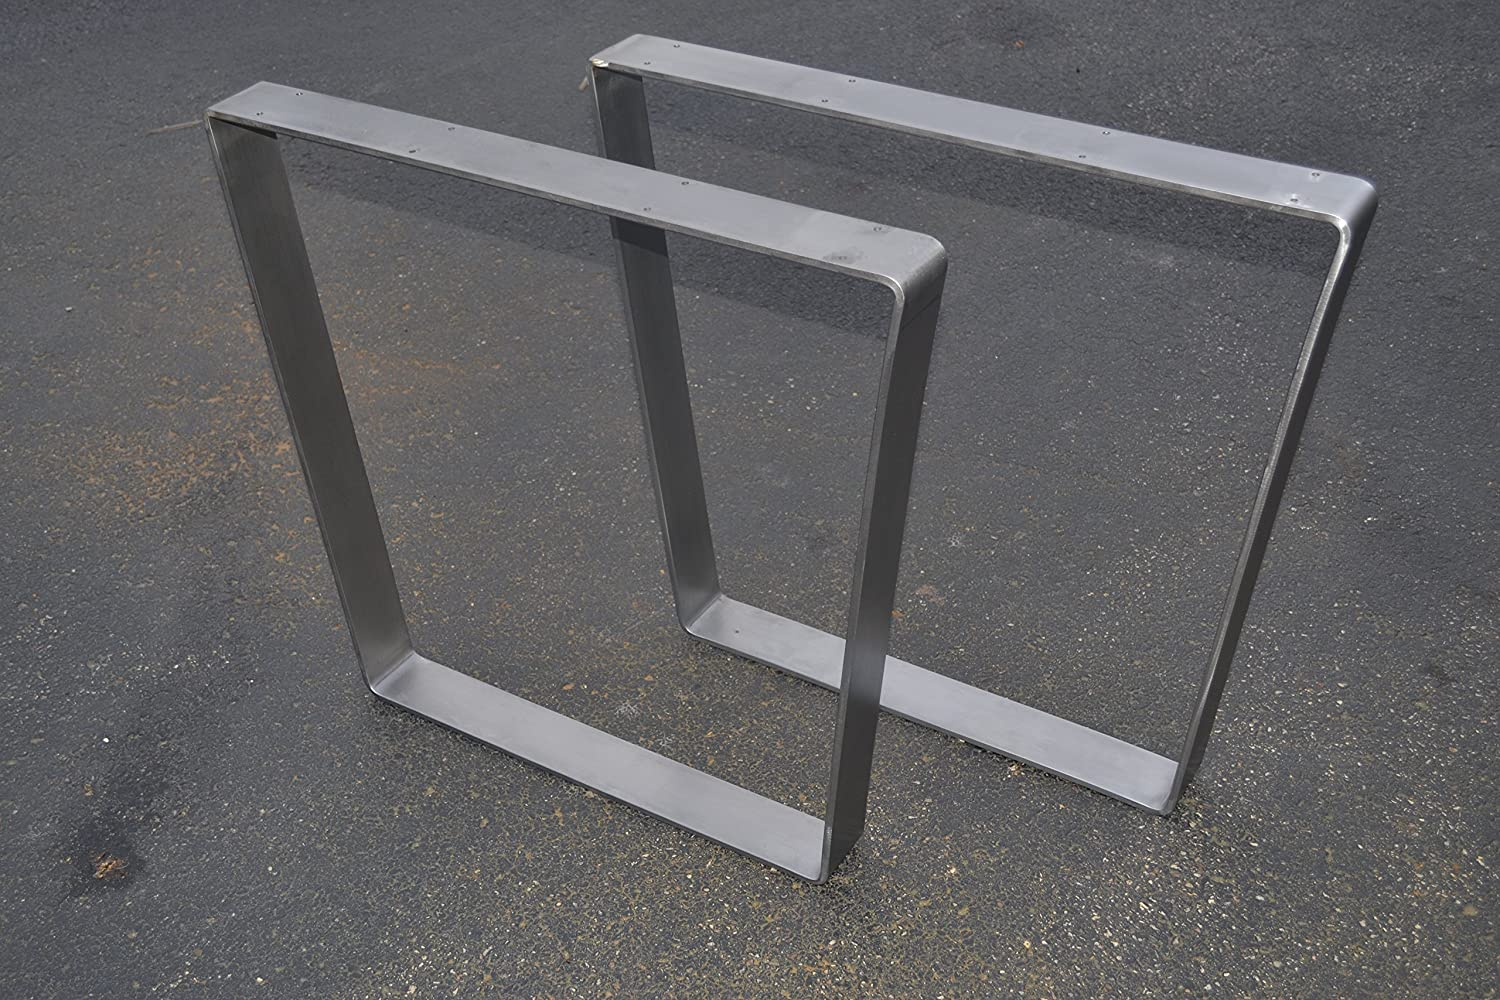 Brushed Stainless Table Legs, Bent Trapezoid Style - Any Size!